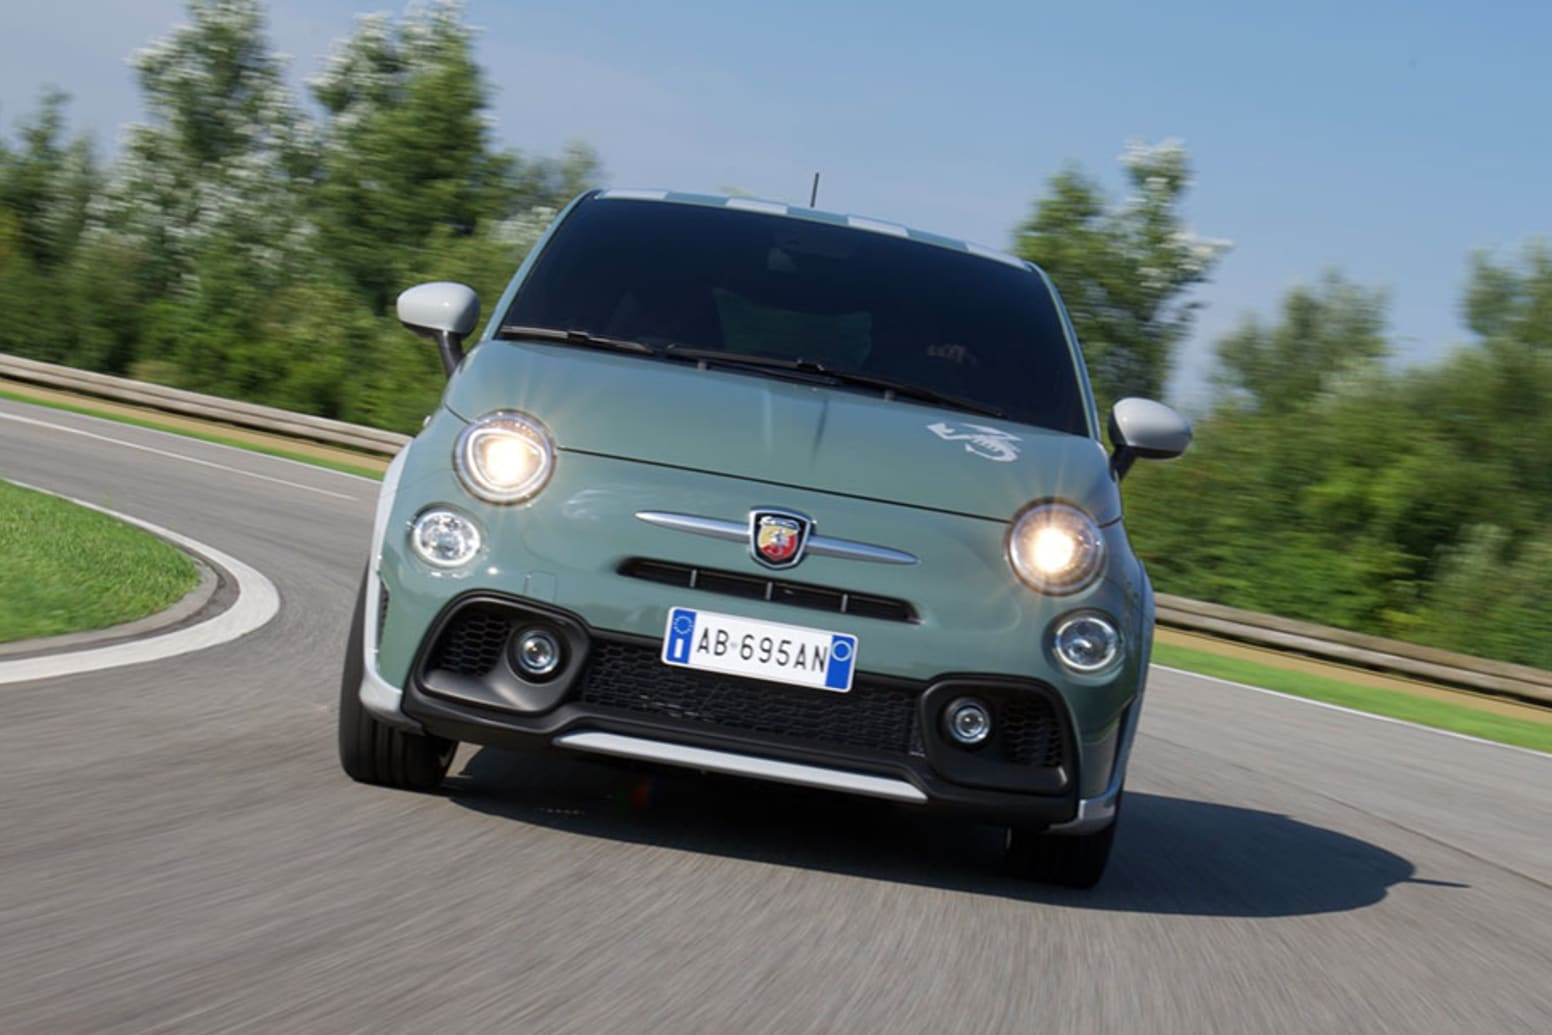 Abarth 695 70th Anniversary Koni Shock Absorbers